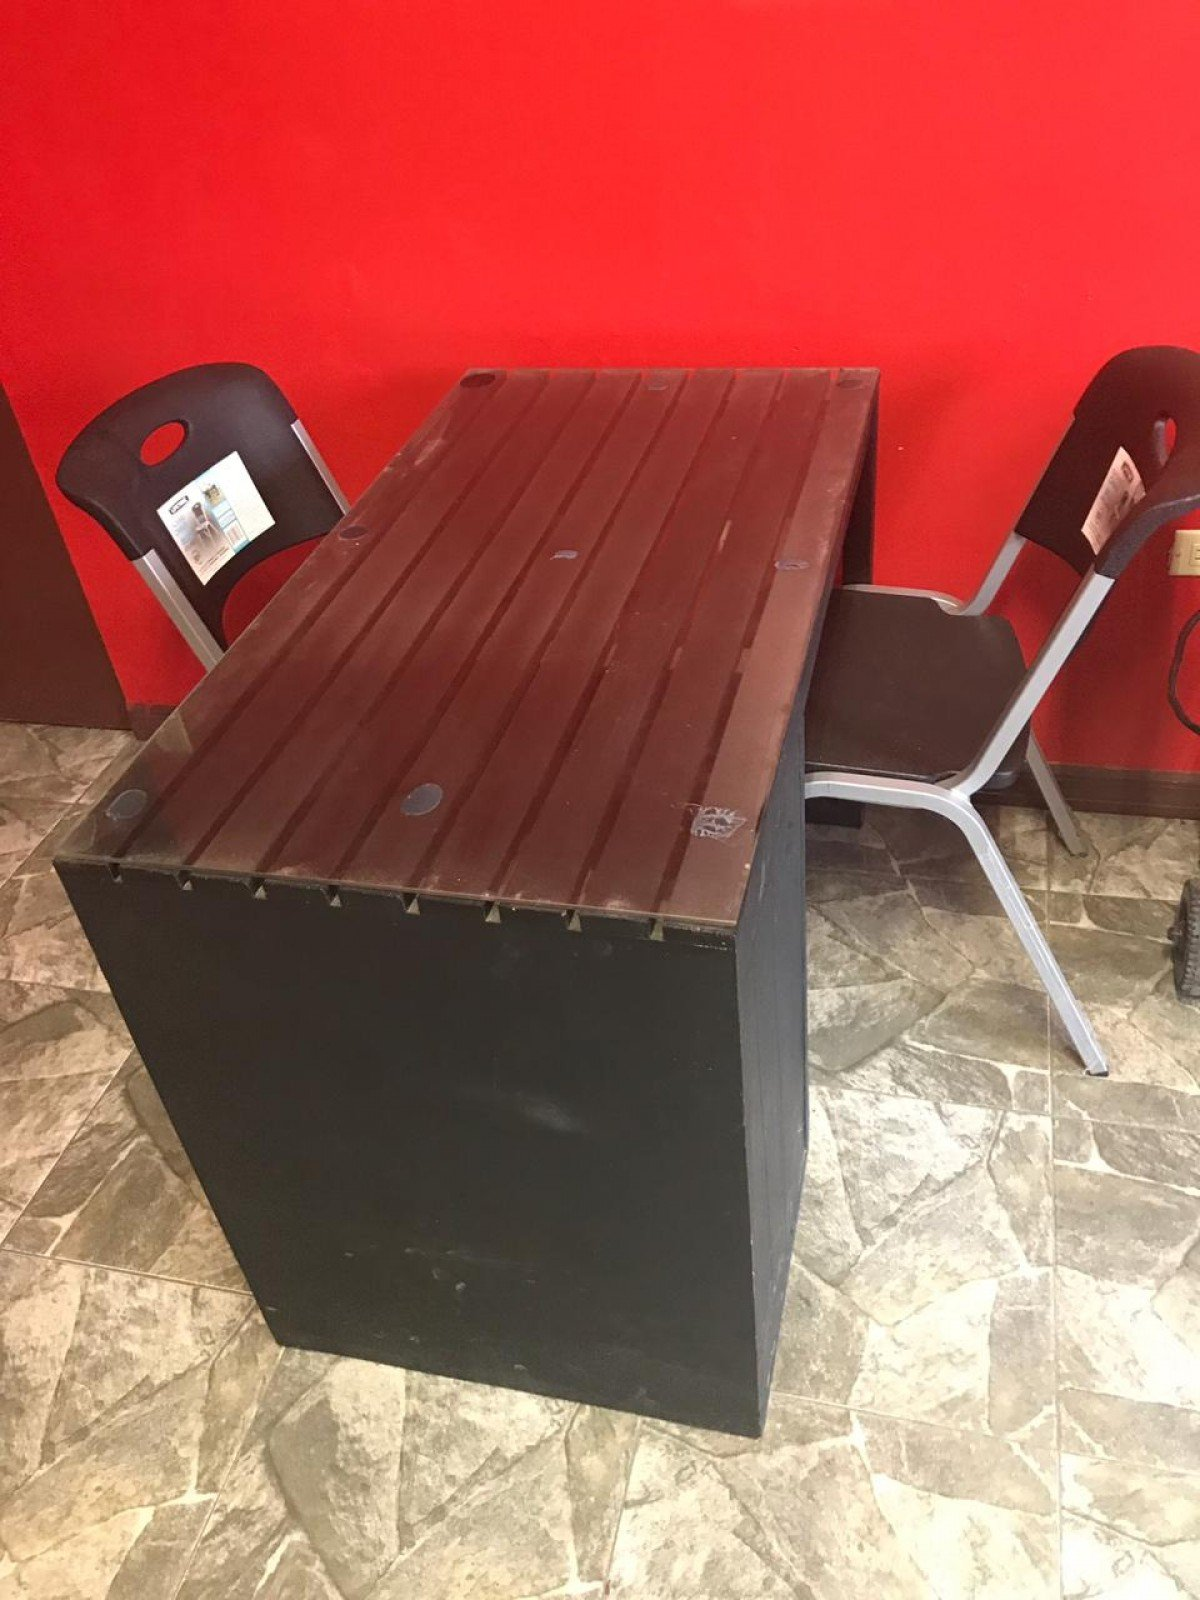 Salon Furniture And Equipments for sale in Kingston Kingston St